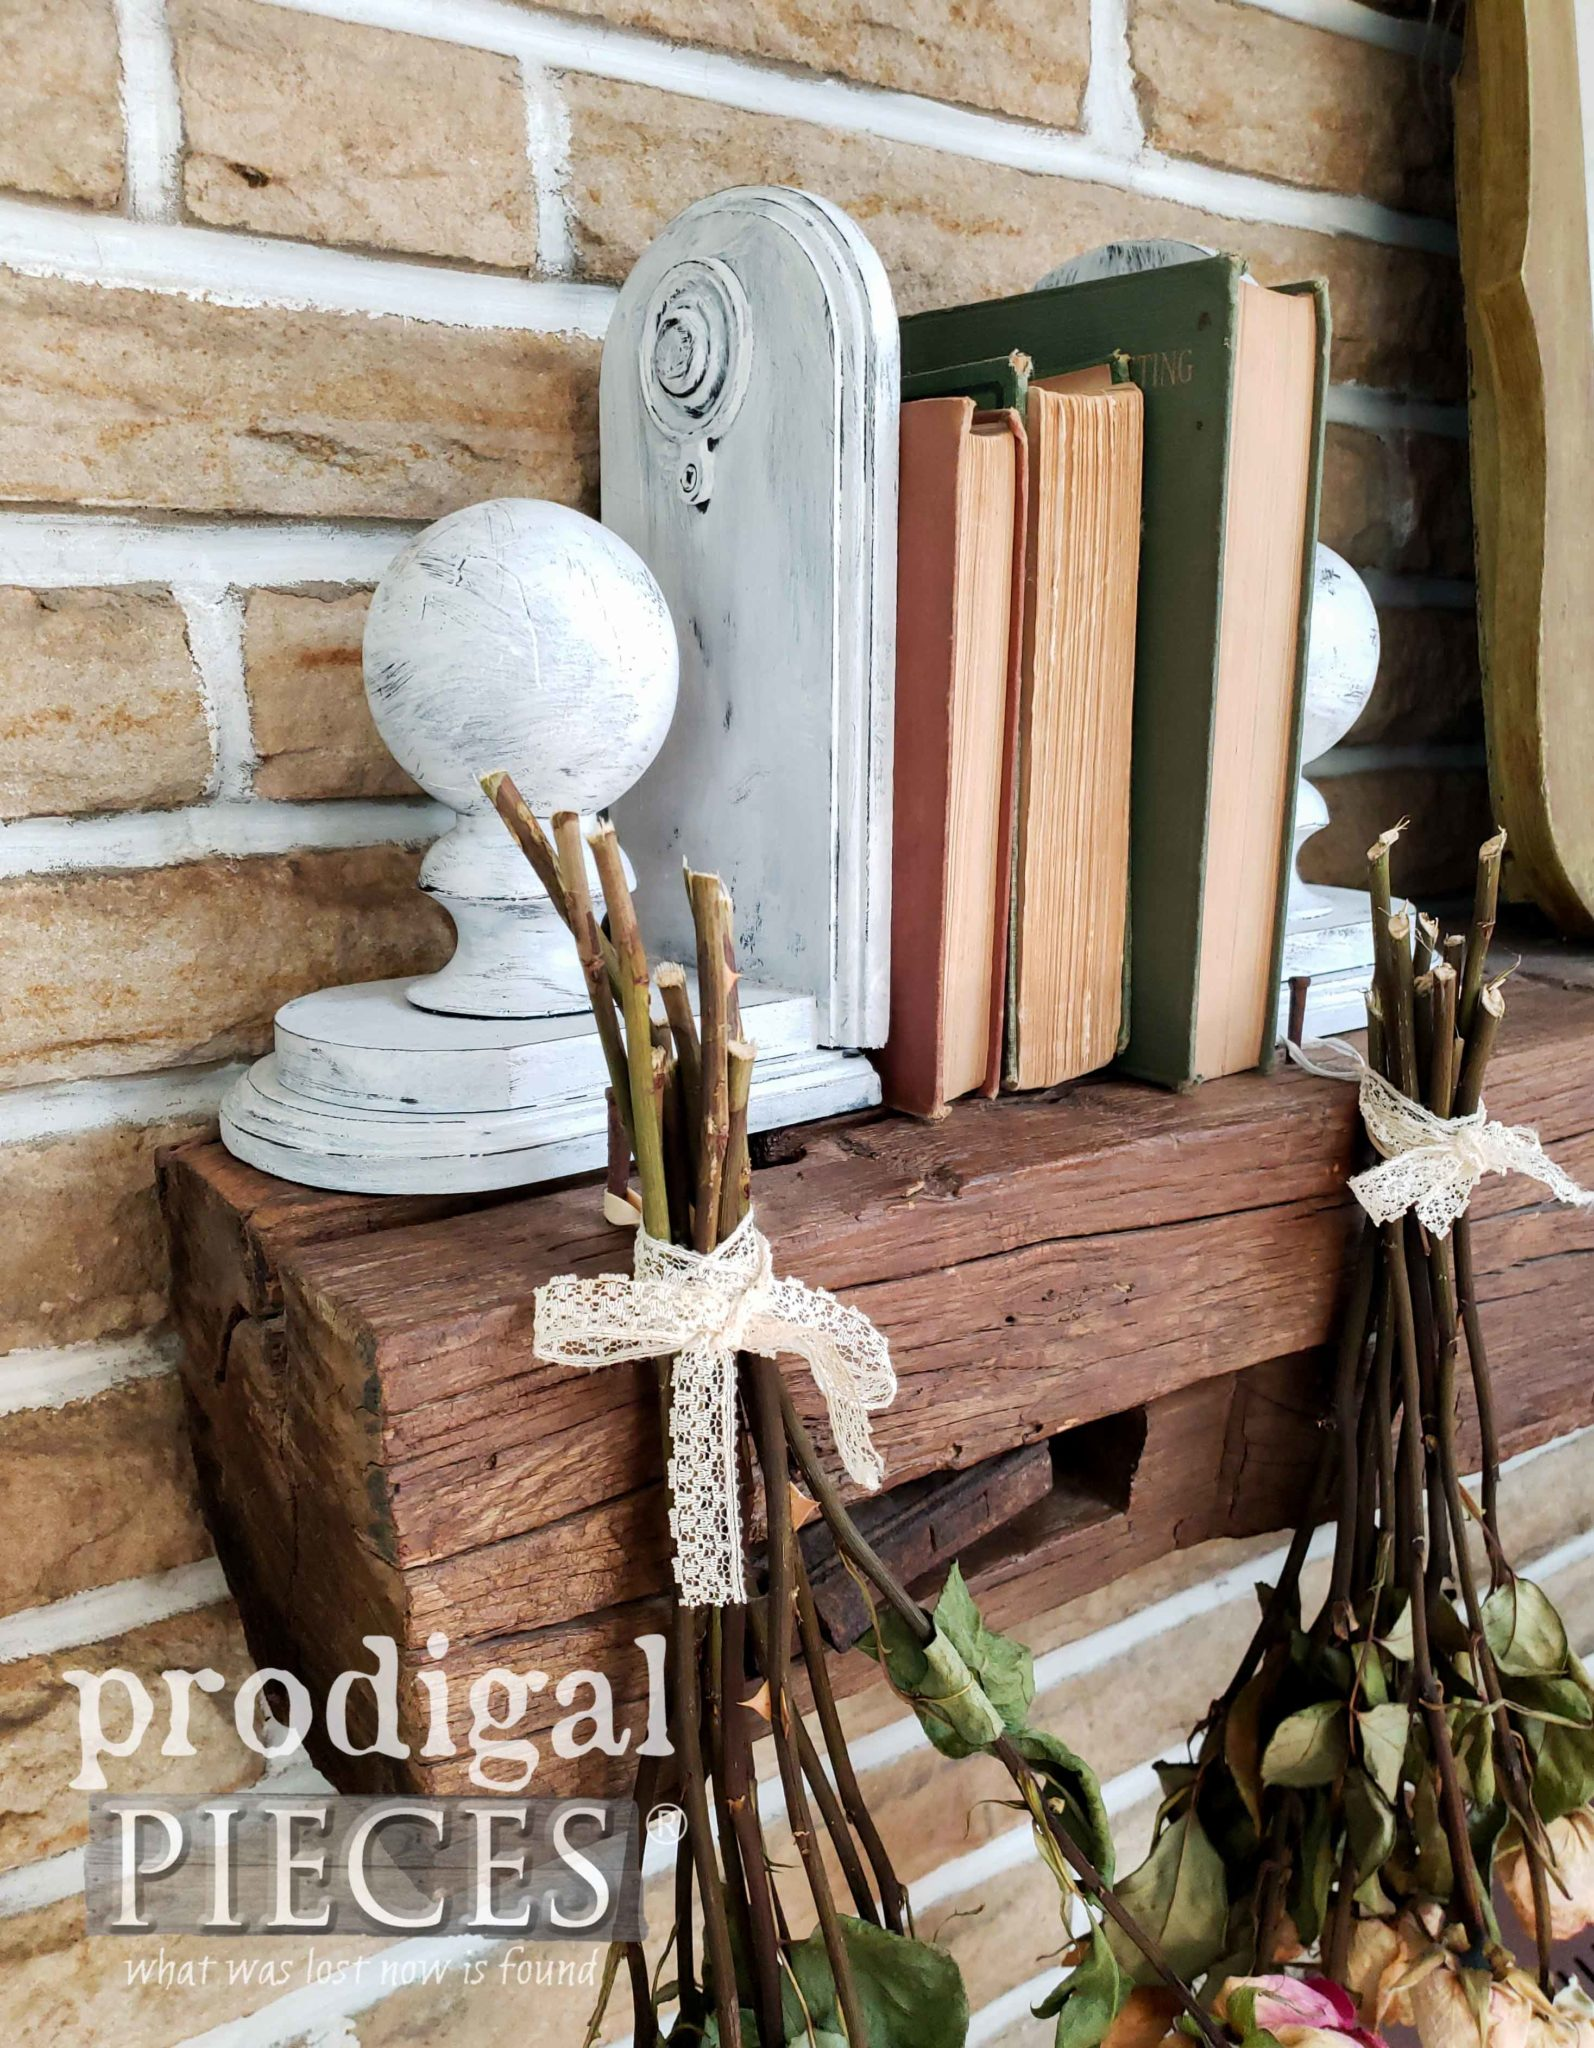 Architectural Salvage Style Bookends for Farmhouse Decor by Larissa of Prodigal Pieces | prodigalpieces.com #prodigalpieces #diy #home #homedecor #farmhouse #handmade